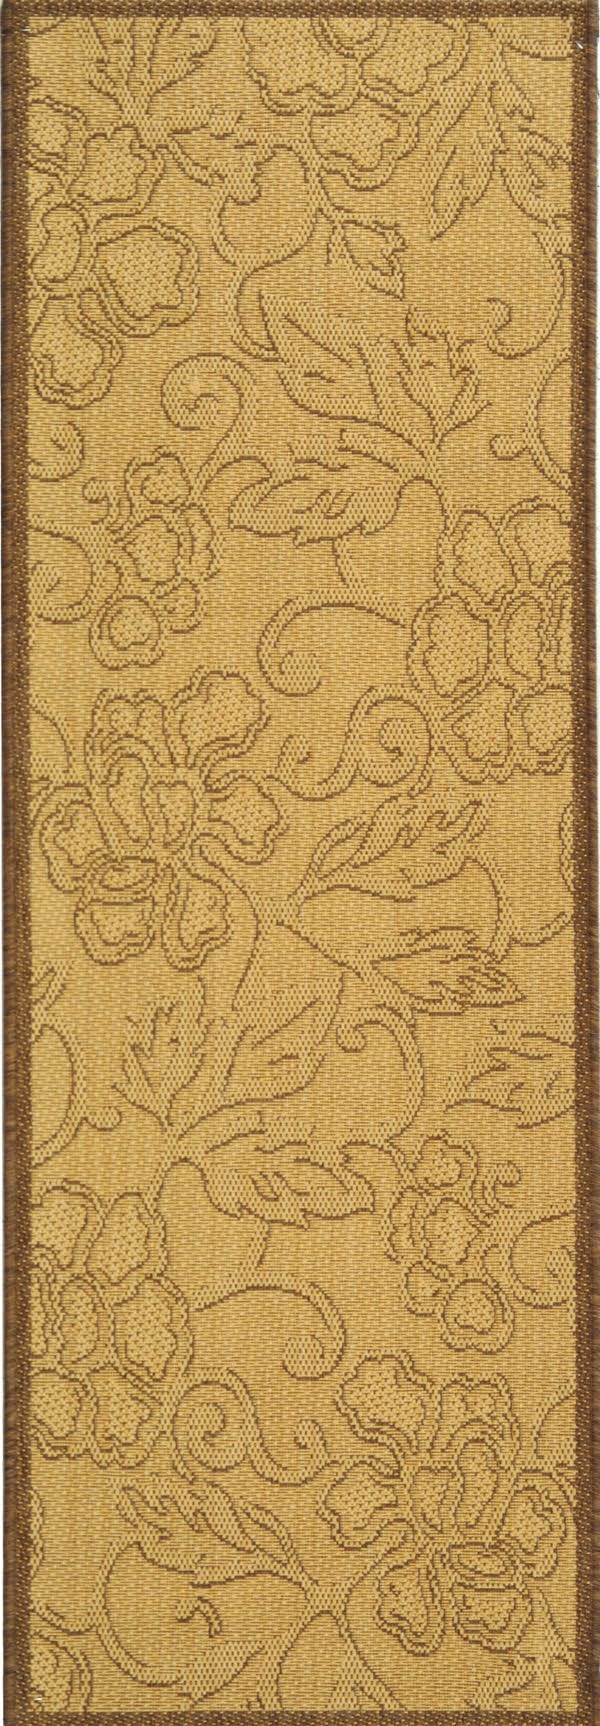 Natural, Brown (3001) Transitional Area Rug